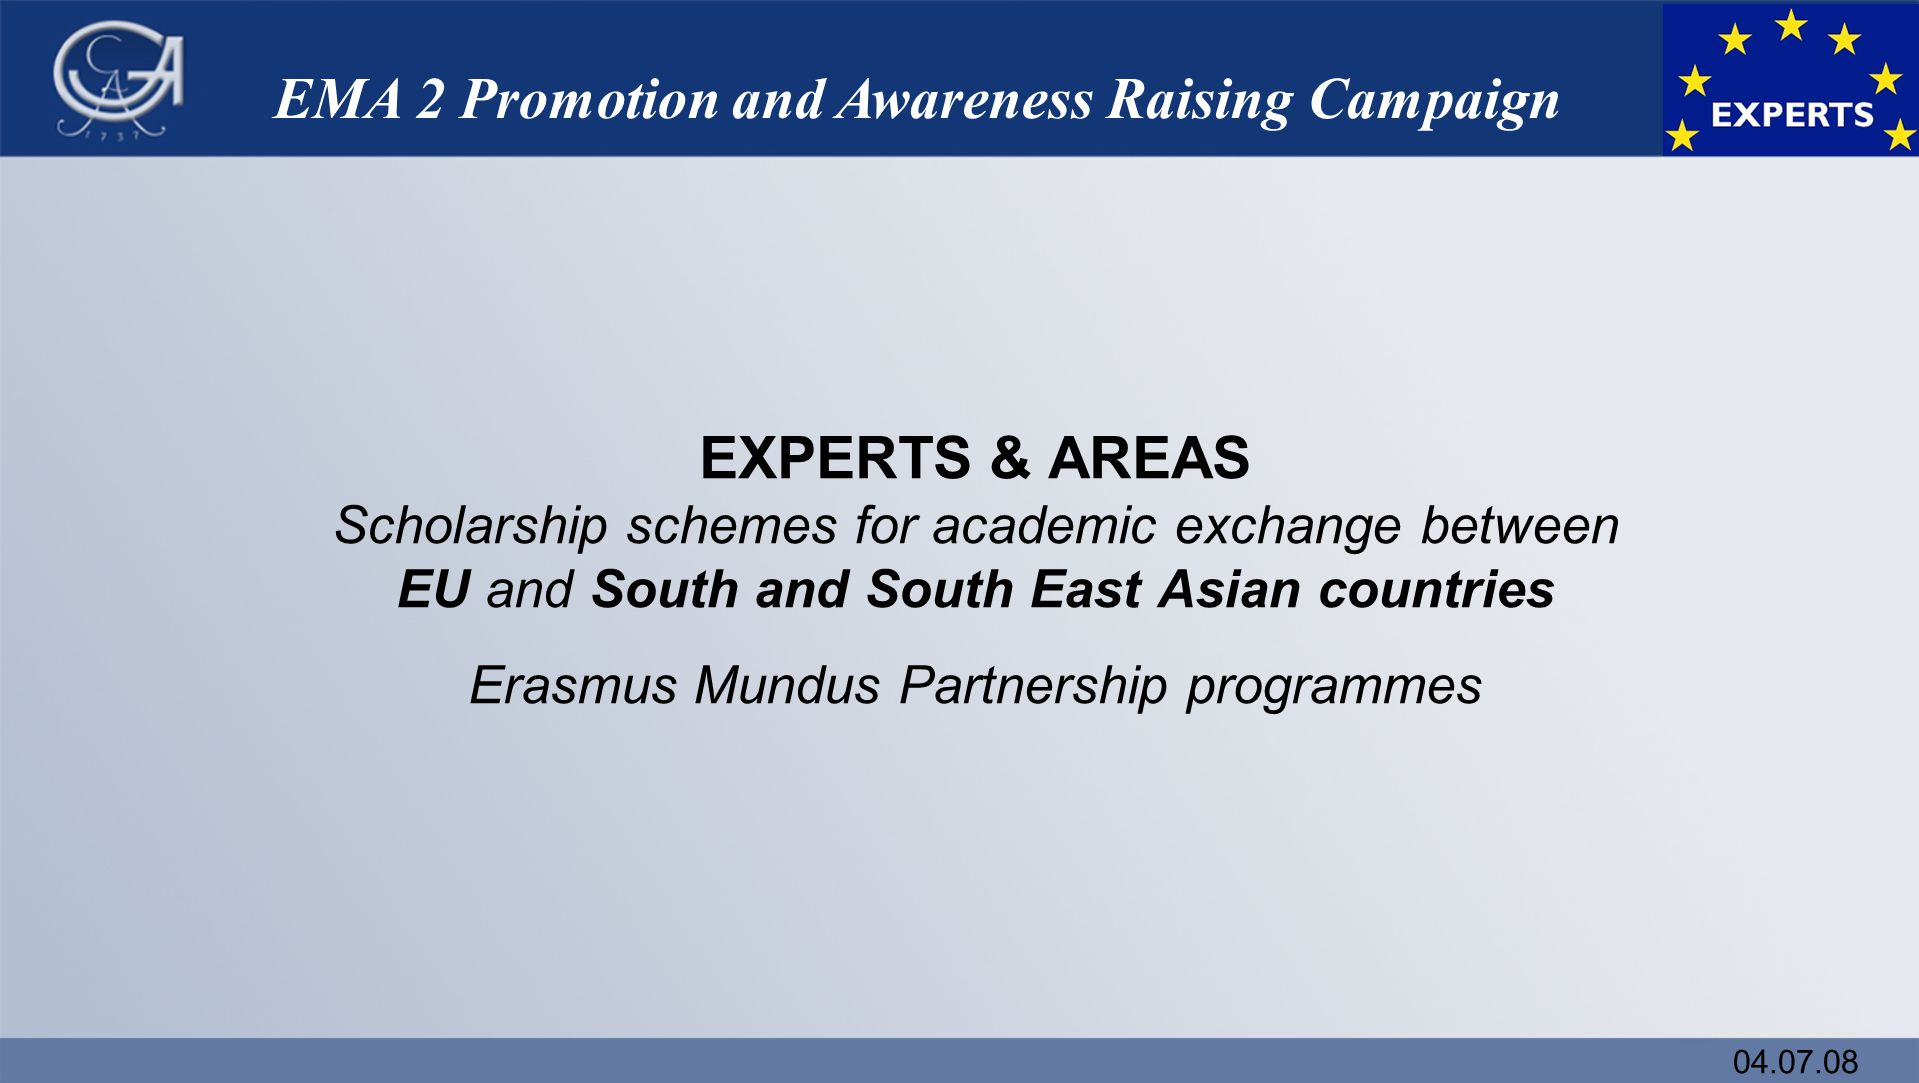 04.07.08 EMA 2 Promotion and Awareness Raising Campaign EXPERTS & AREAS Scholarship schemes for academic exchange between EU and South and South East Asian countries Erasmus Mundus Partnership programmes